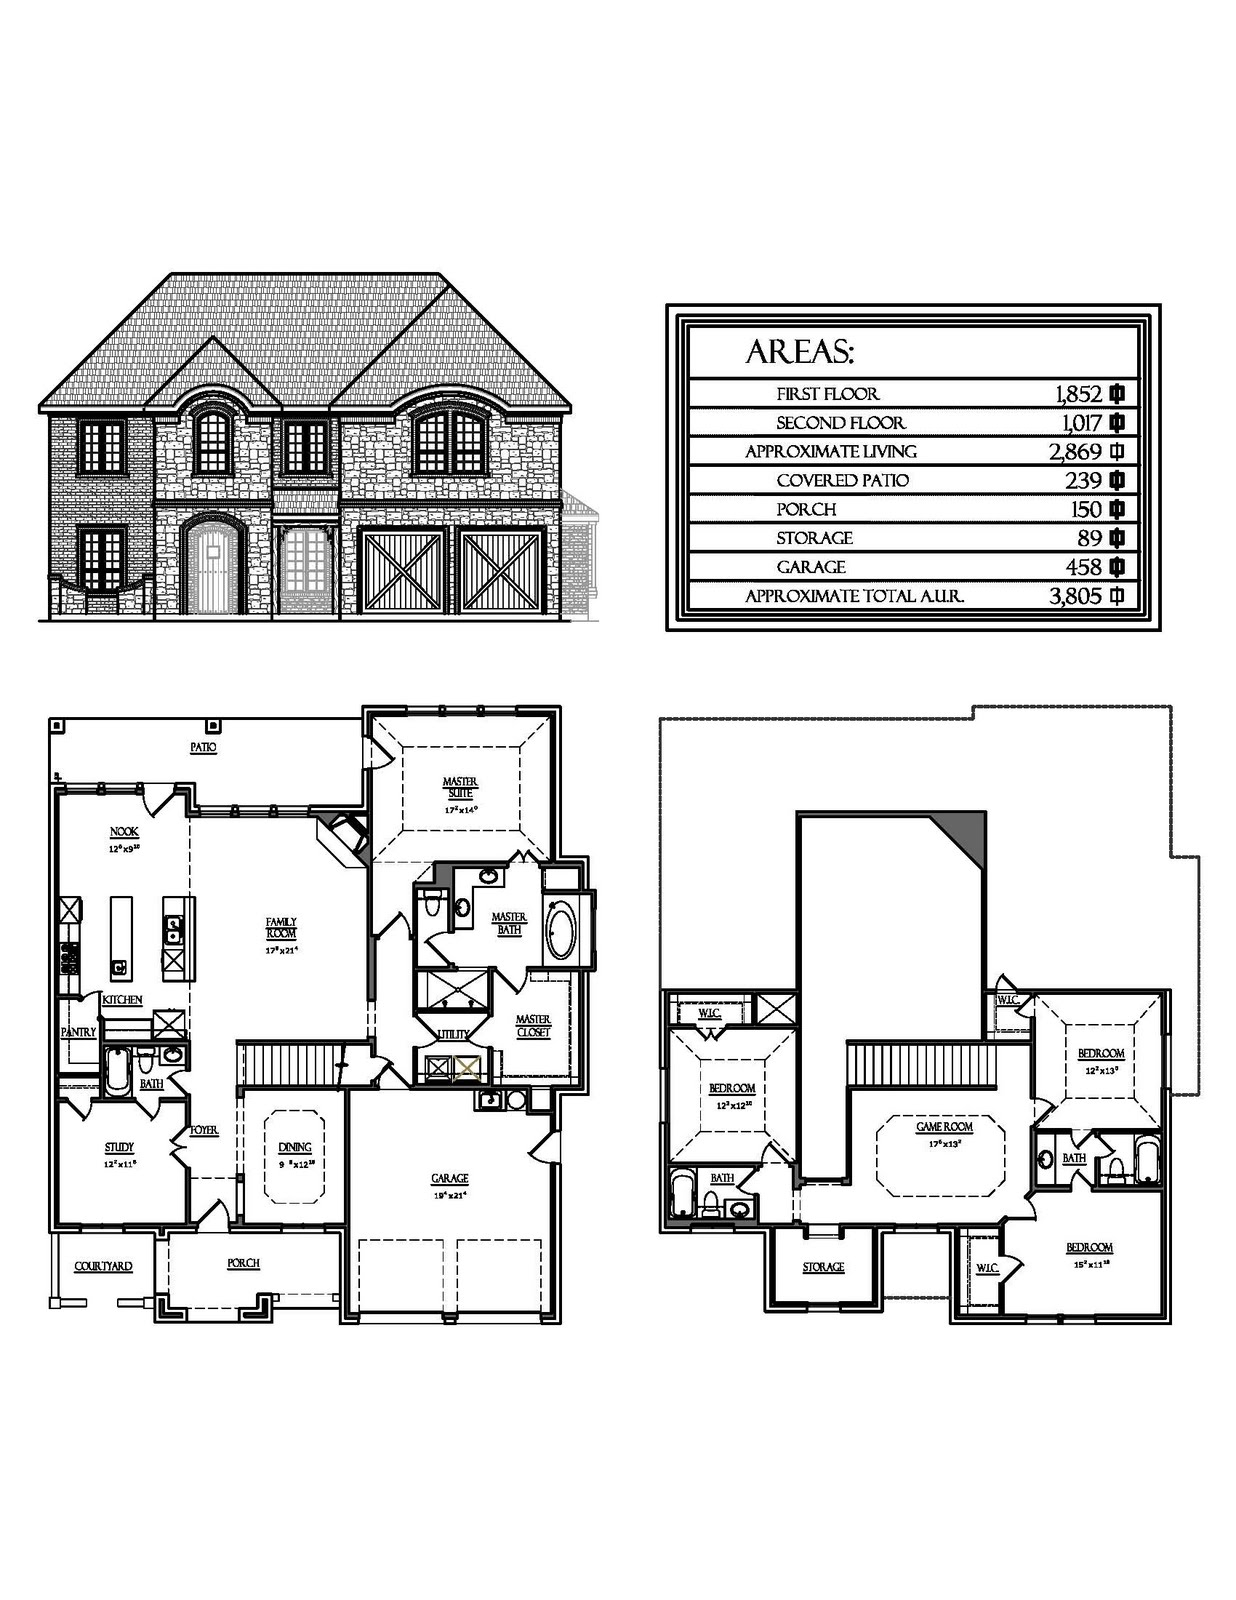 Q Home Designs - Residential Designers: Welcome Home Hero